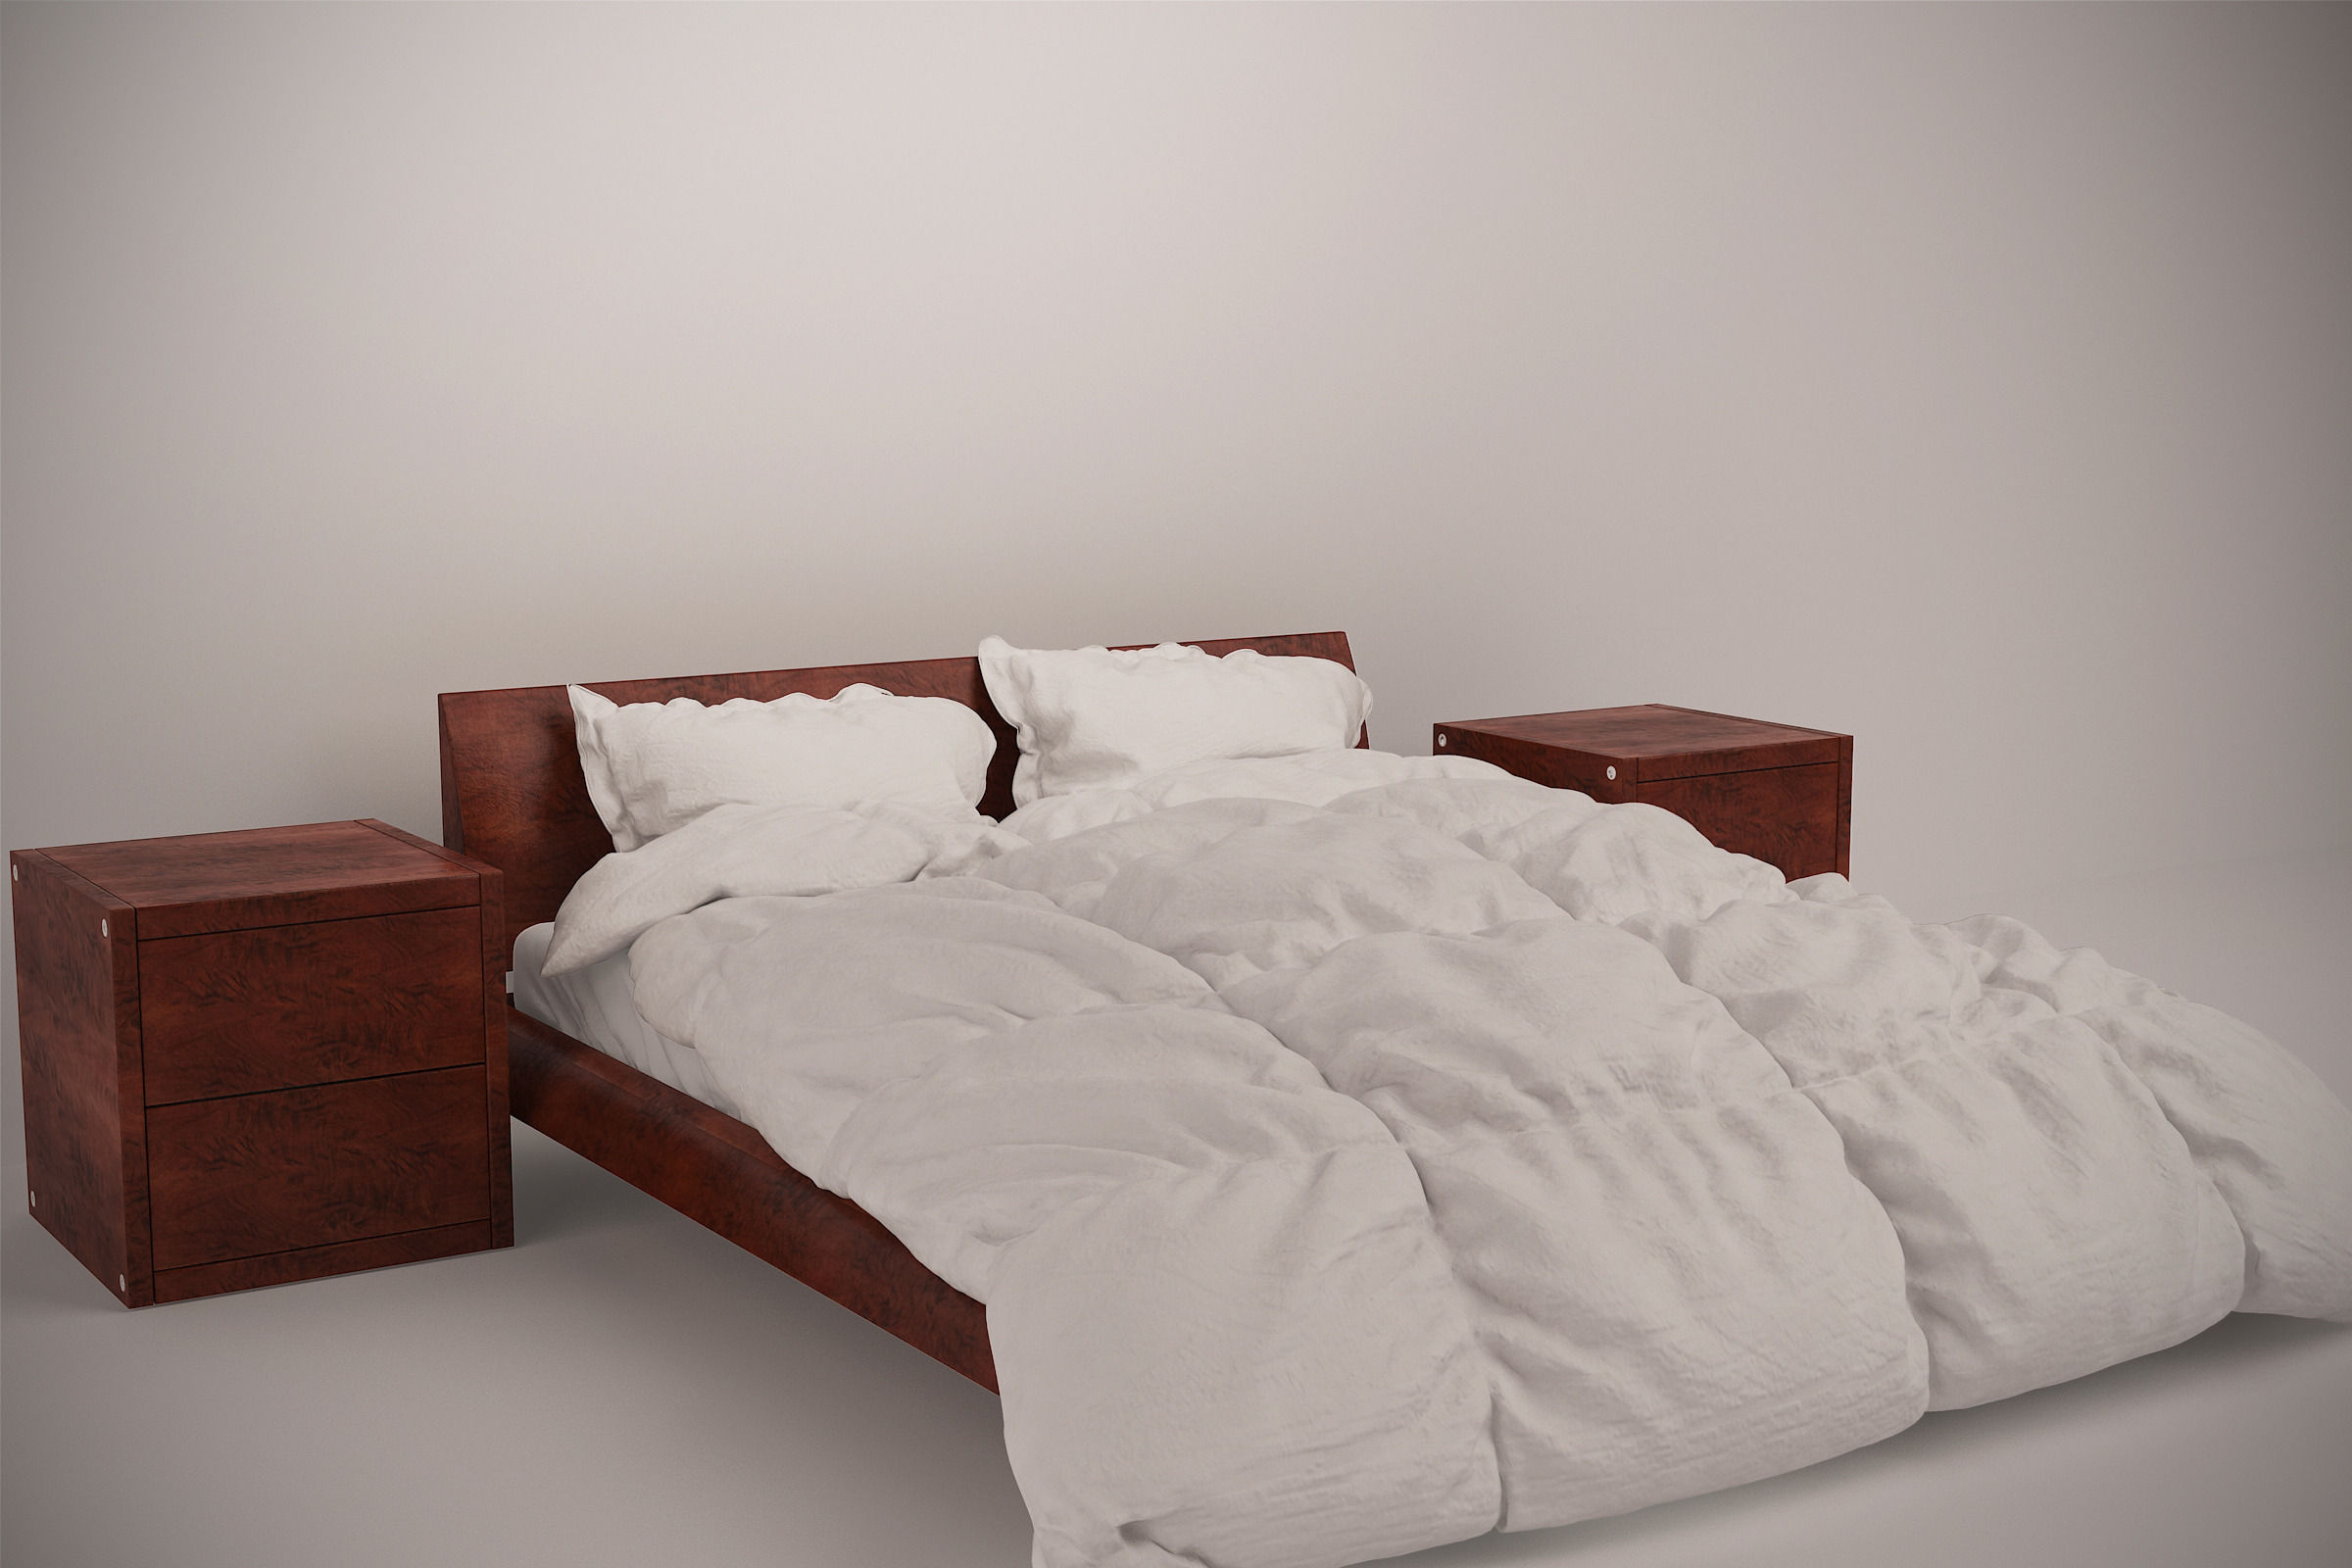 Wooden Bed Set With Duvet And Pillows Model Max Obj Mtl 1